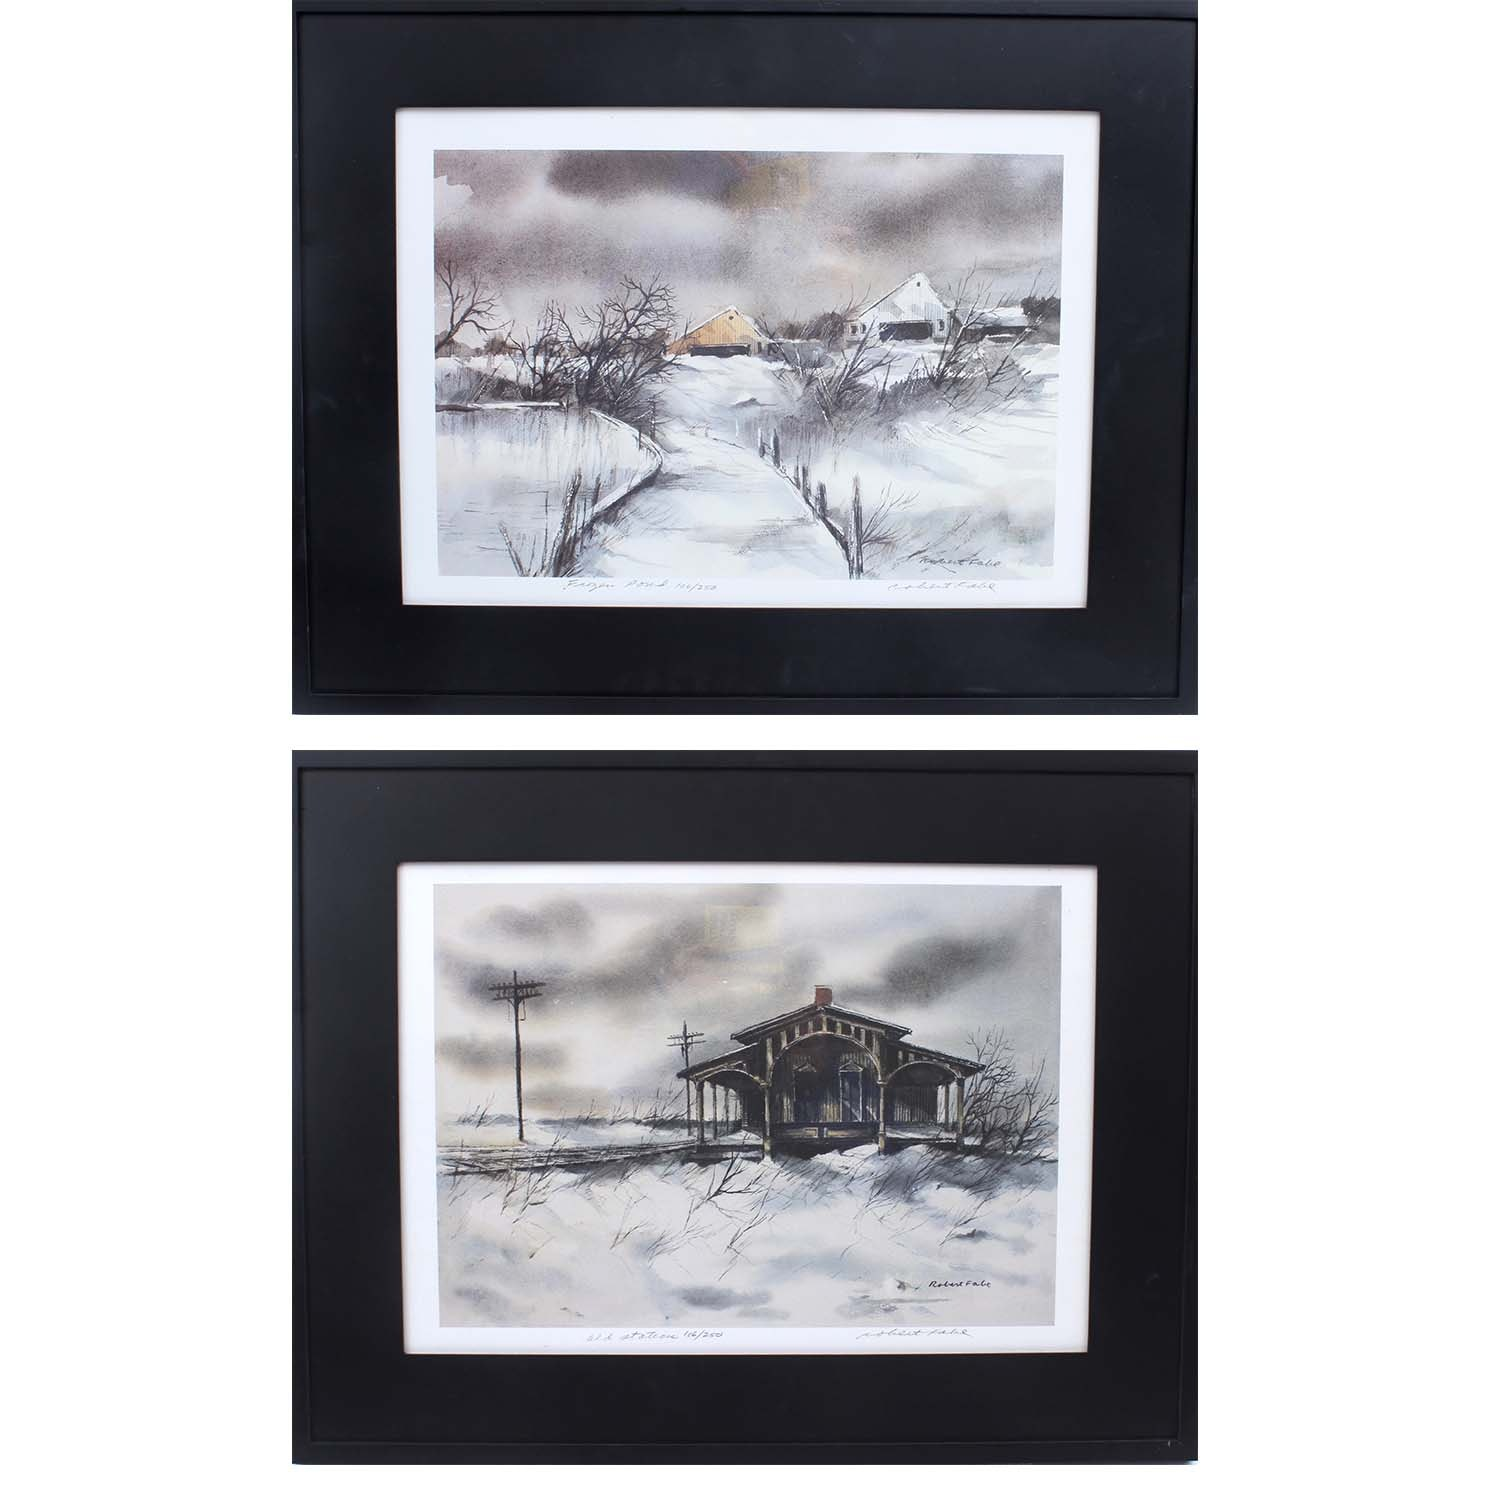 Two Signed Robert Fabe Limited Edition Offset Lithographs